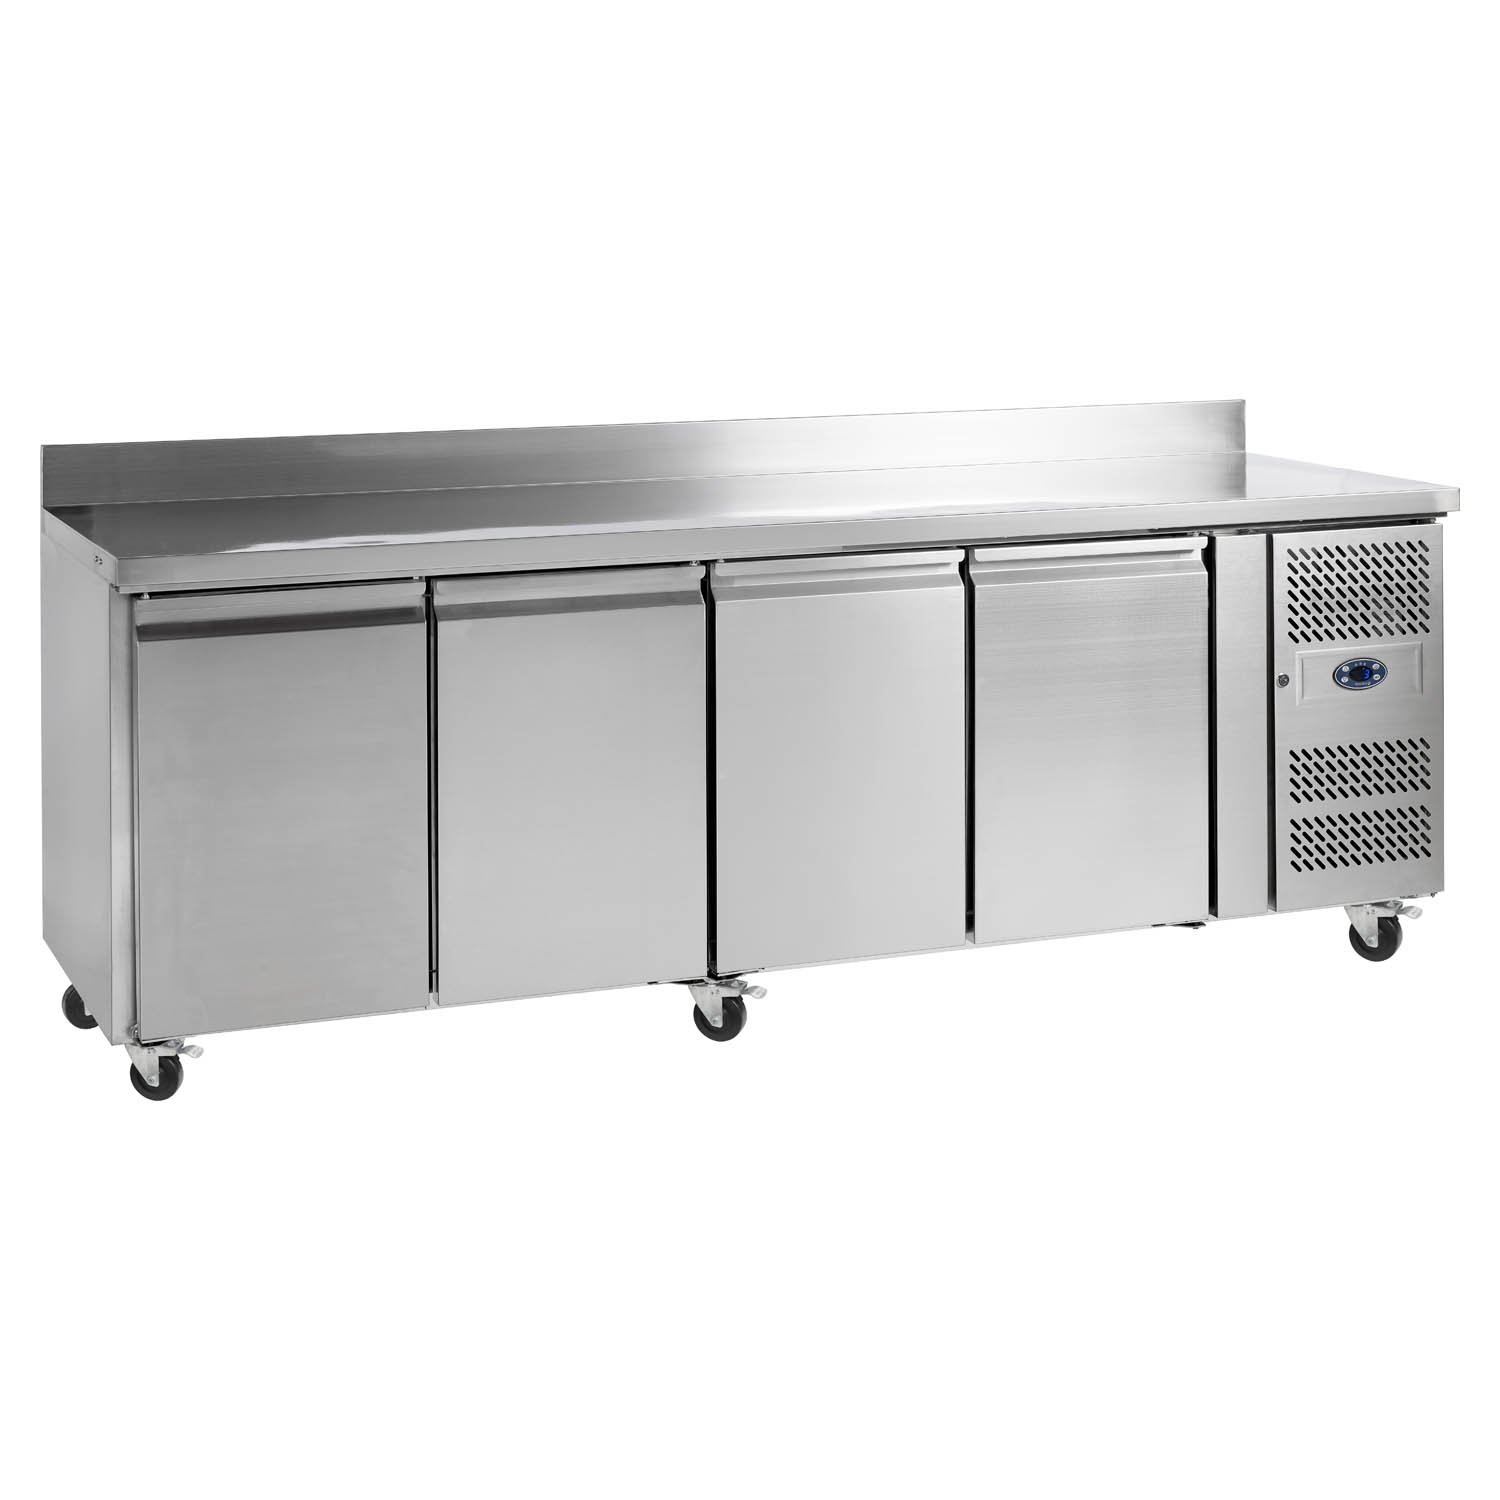 Tefcold CK7410B SS Gastronorm Counter 4-Door Chiller with Splashback